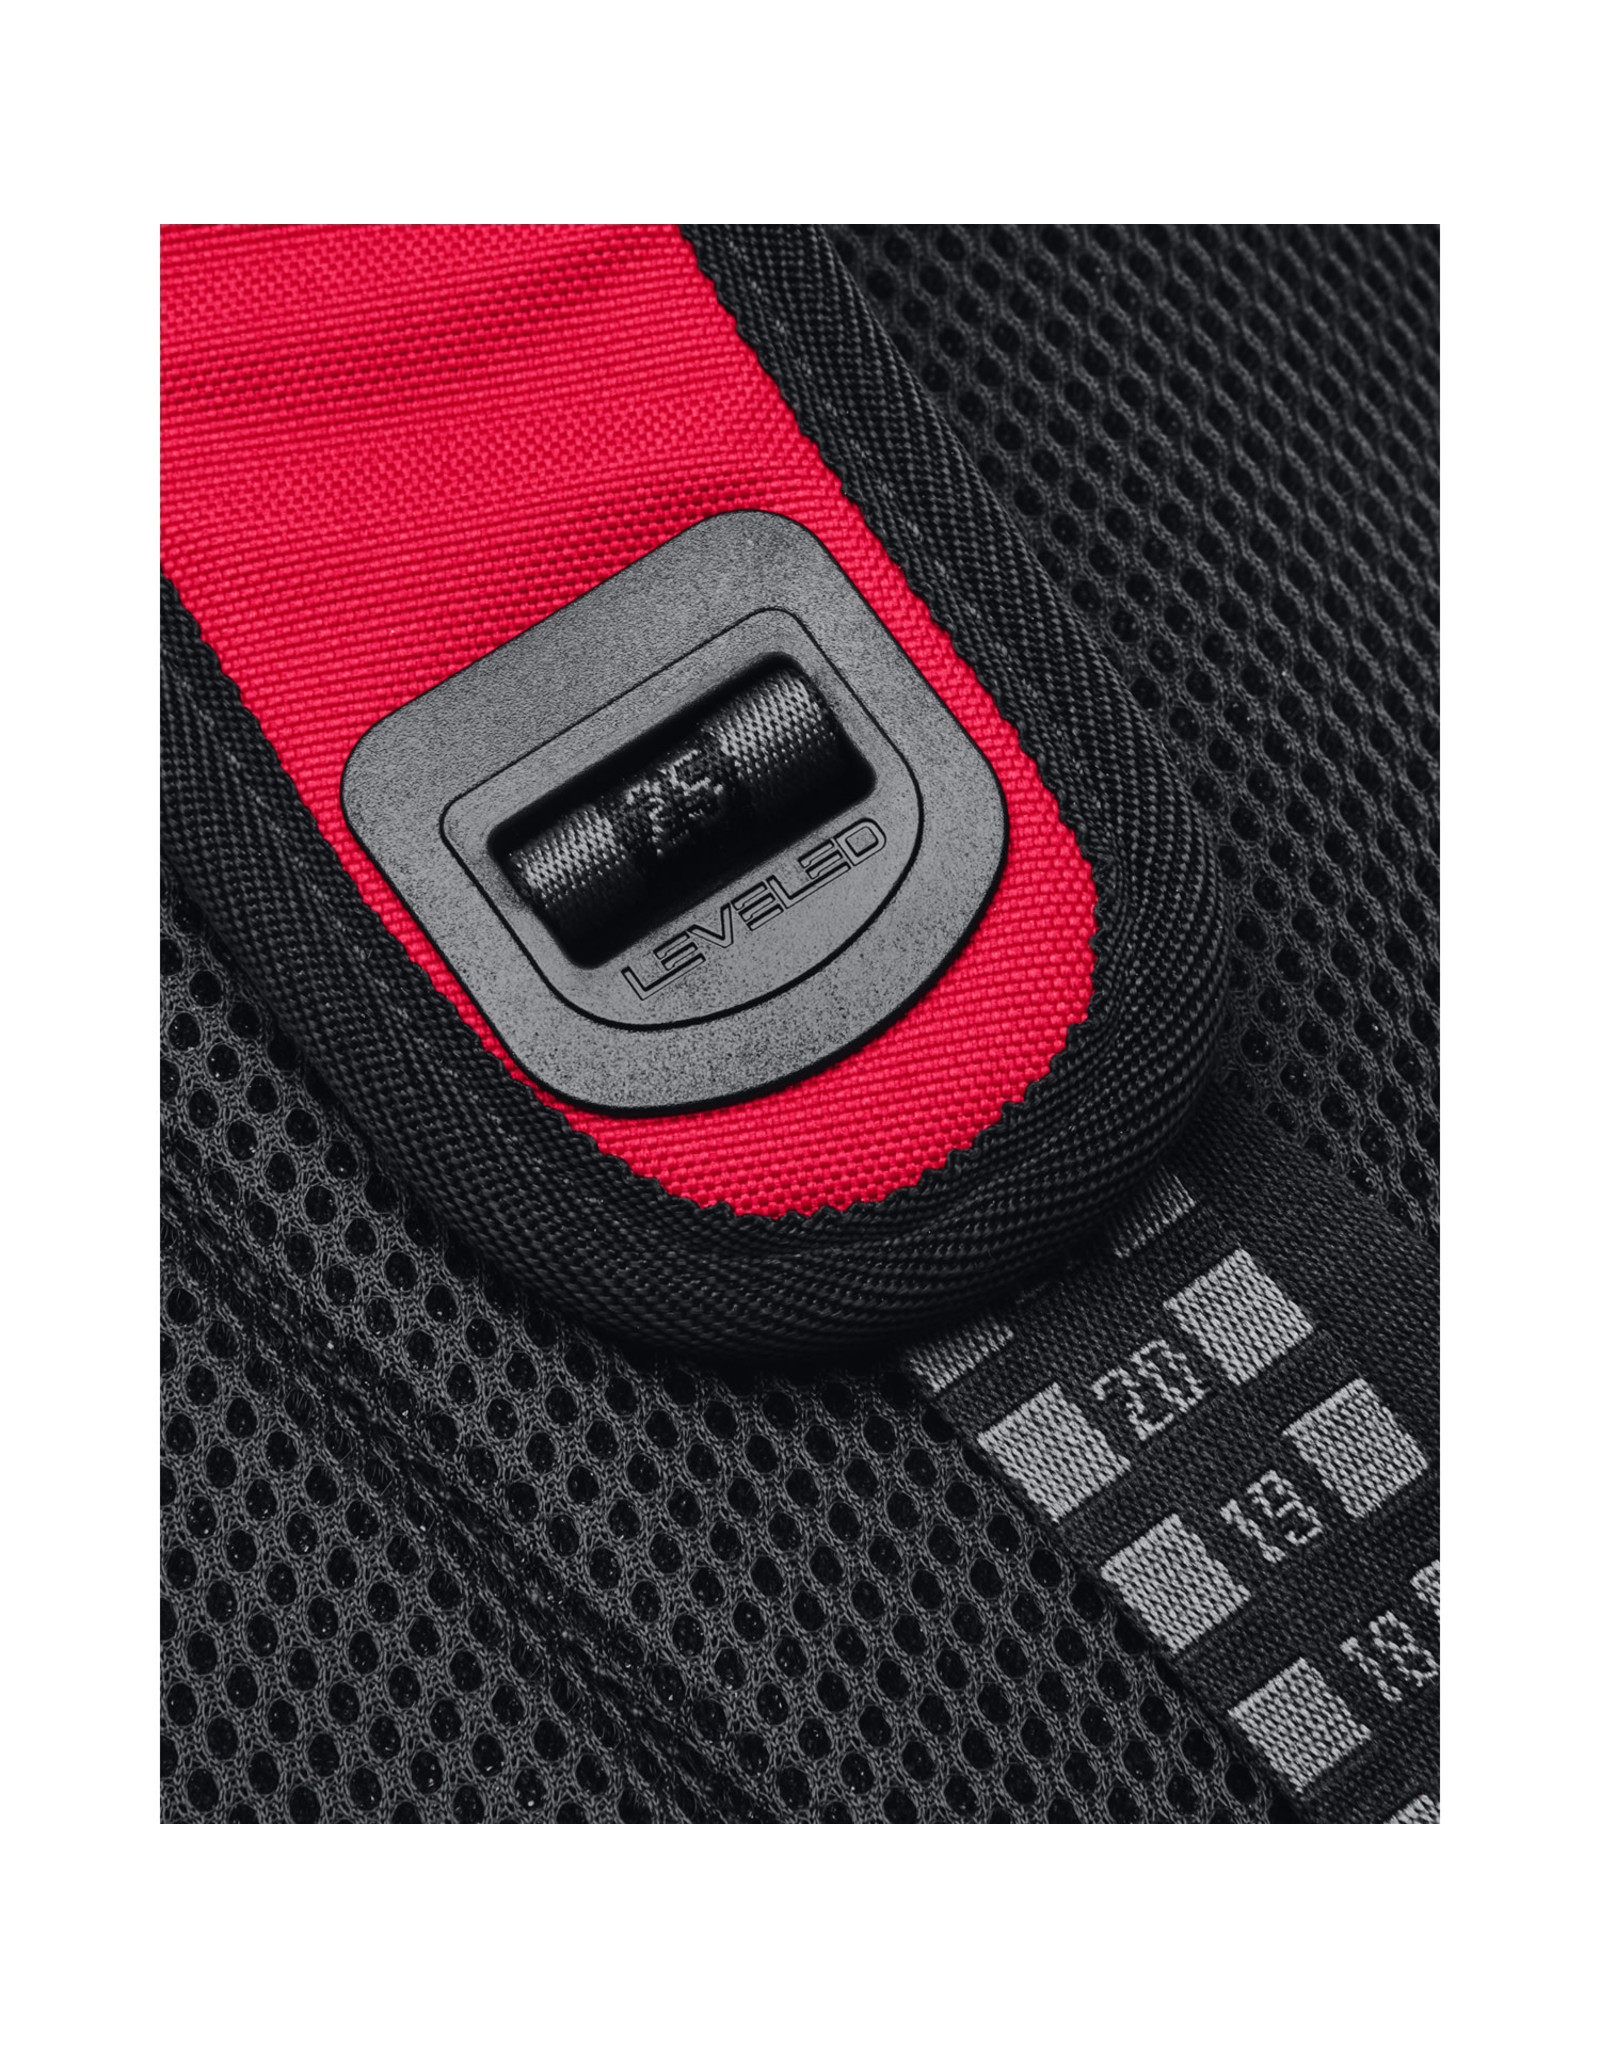 Under Armour UA Hustle Pro Backpack-Red